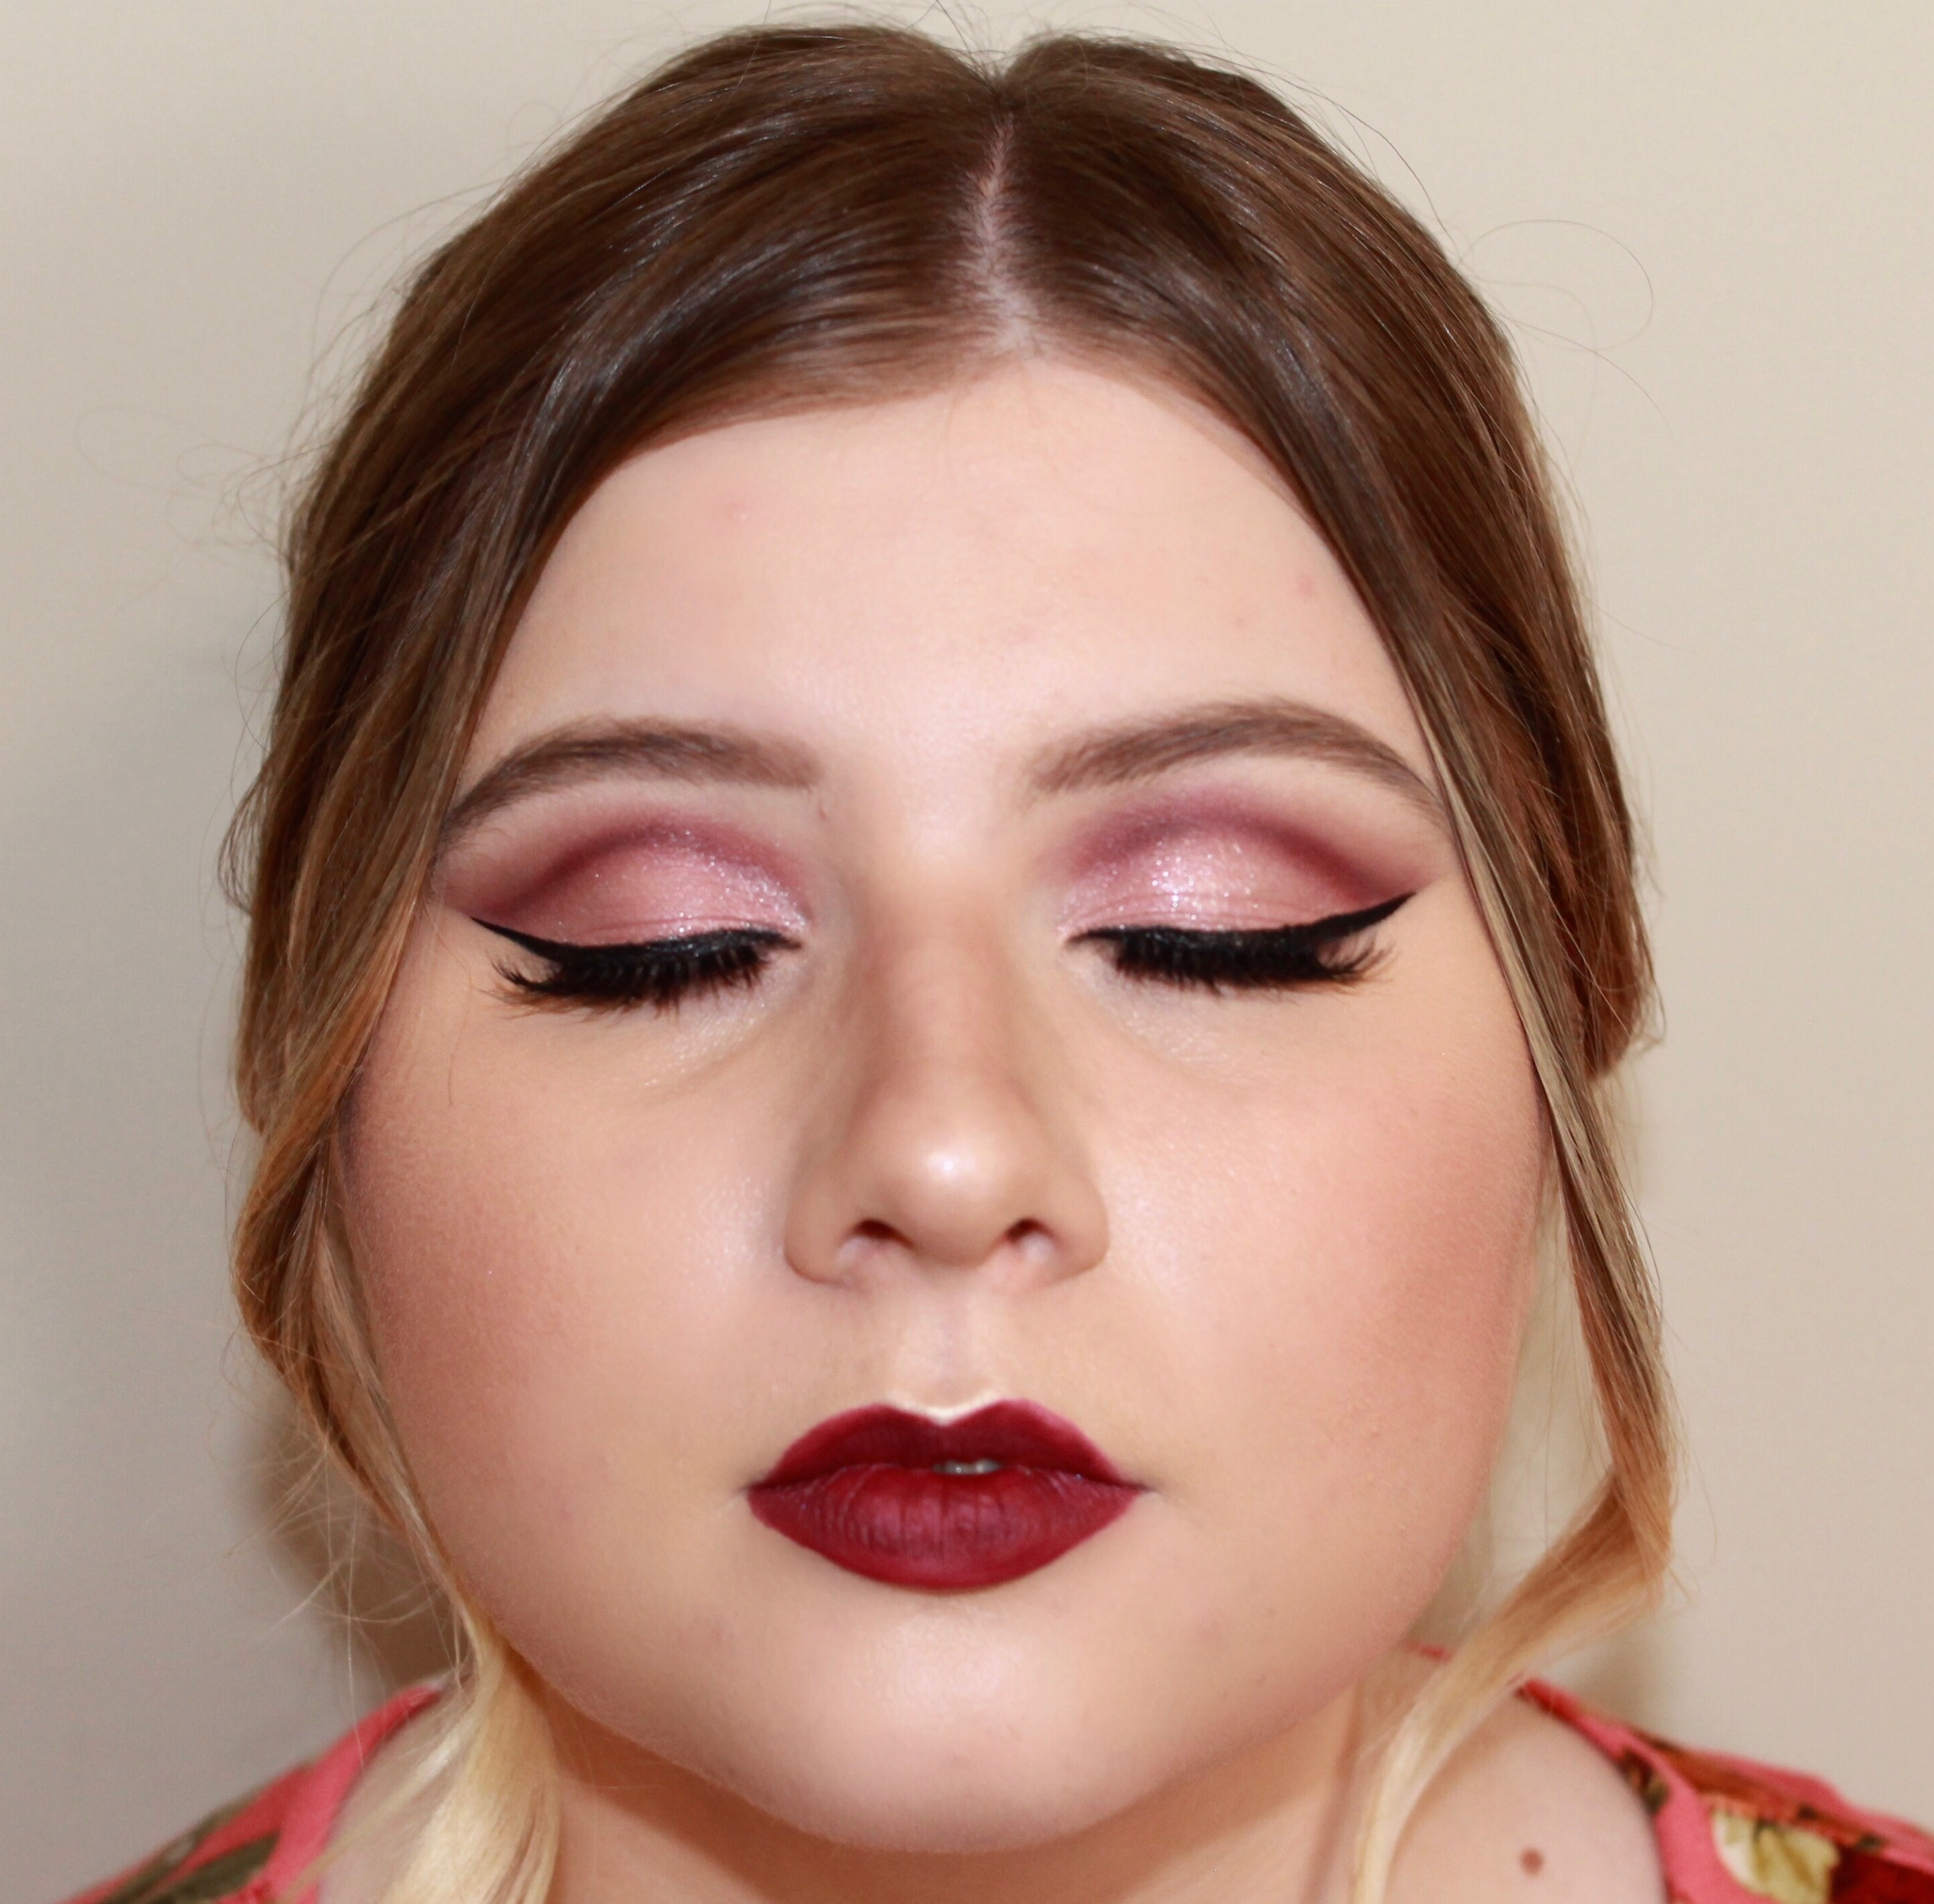 Cut crease makeup by Jessica galdy makeup Made Eazy (1)